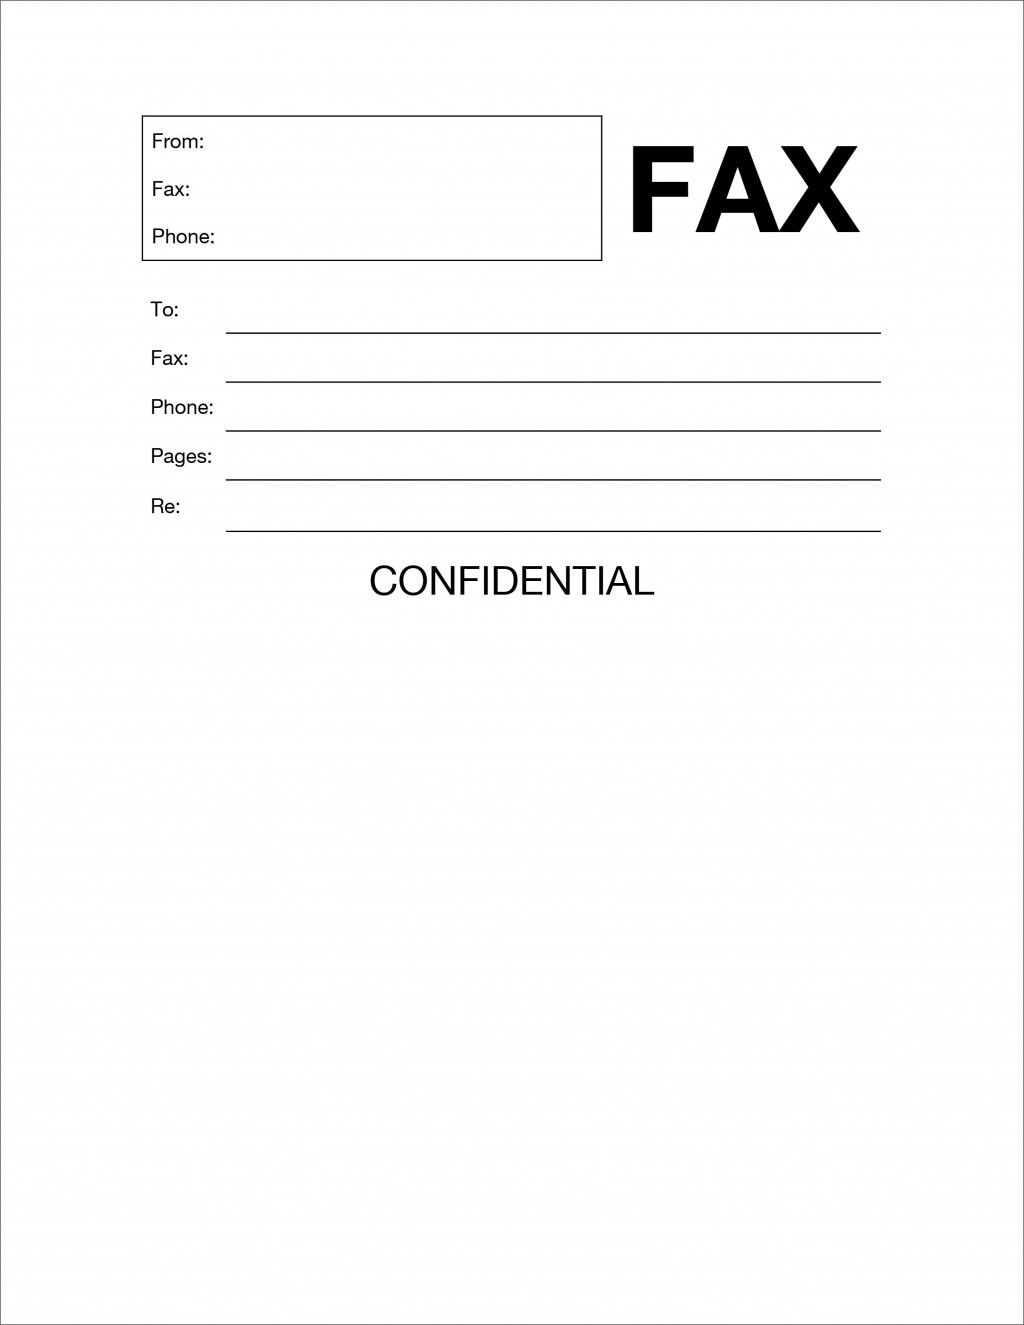 005 Stirring Fax Template Microsoft Word Photo  Cover Sheet 2010 Letter BusinesLarge